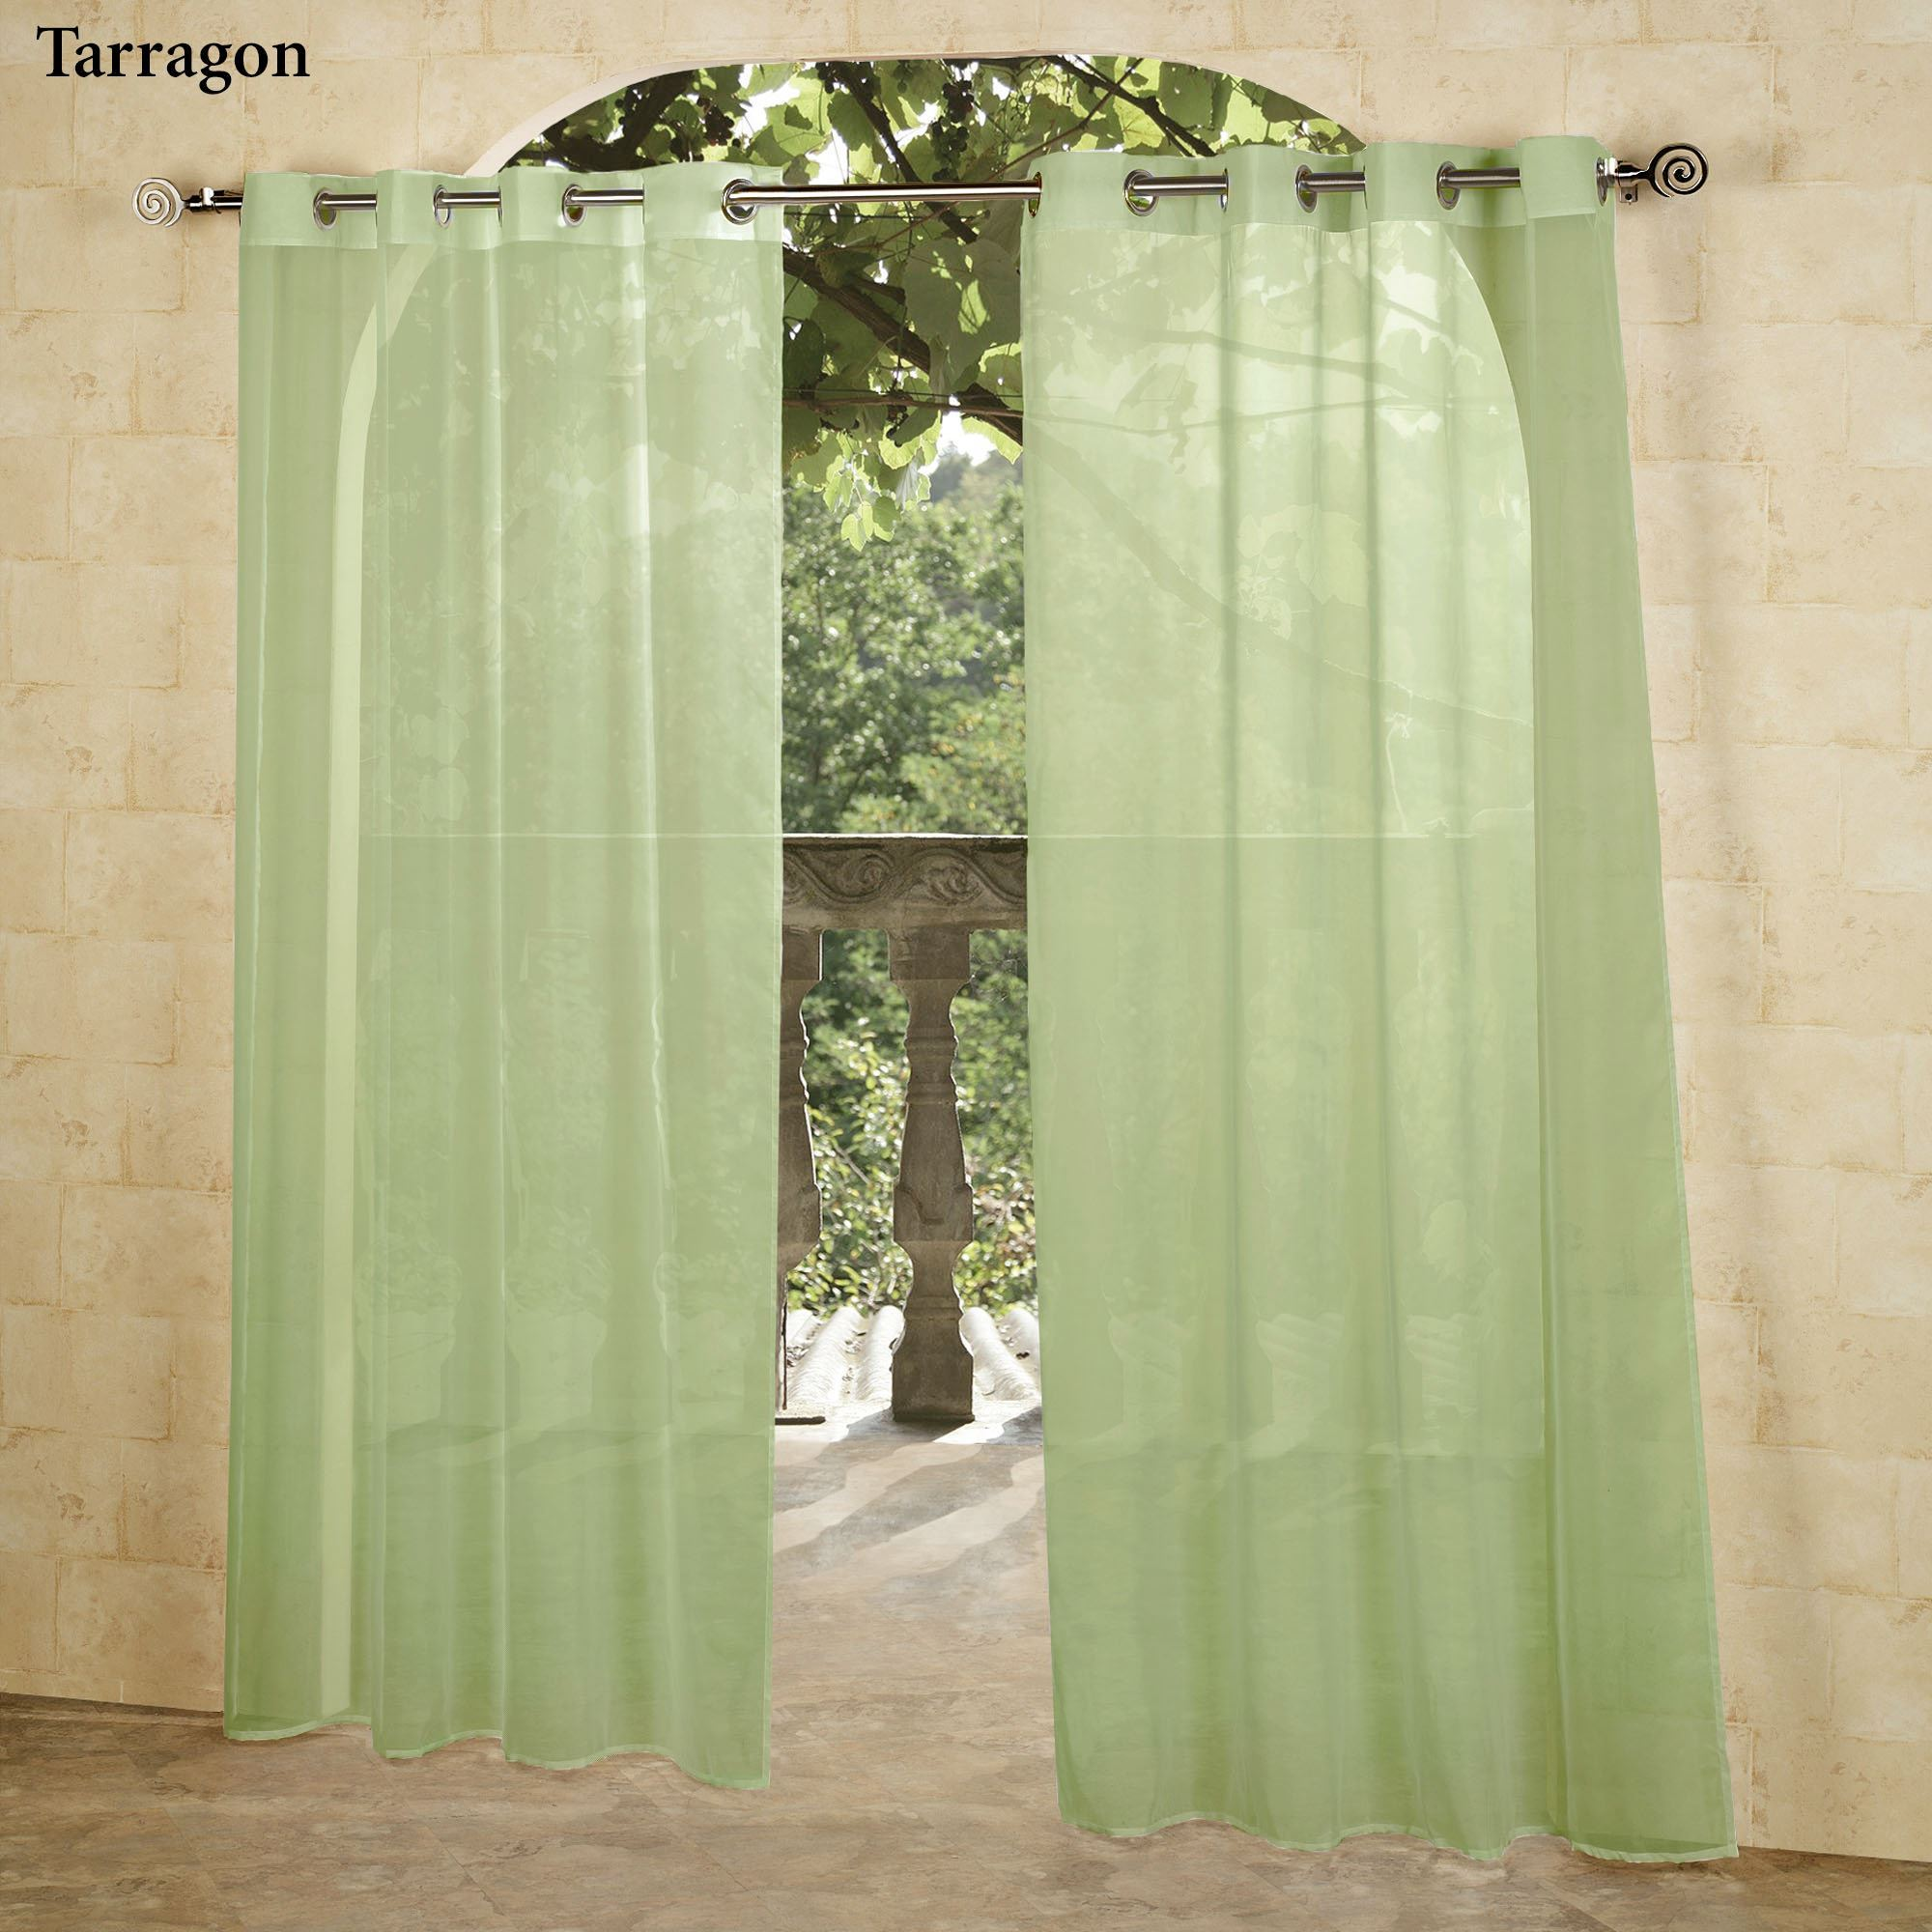 panel to indoor panels outdoor grommet gazebo p click color curtain expand solid